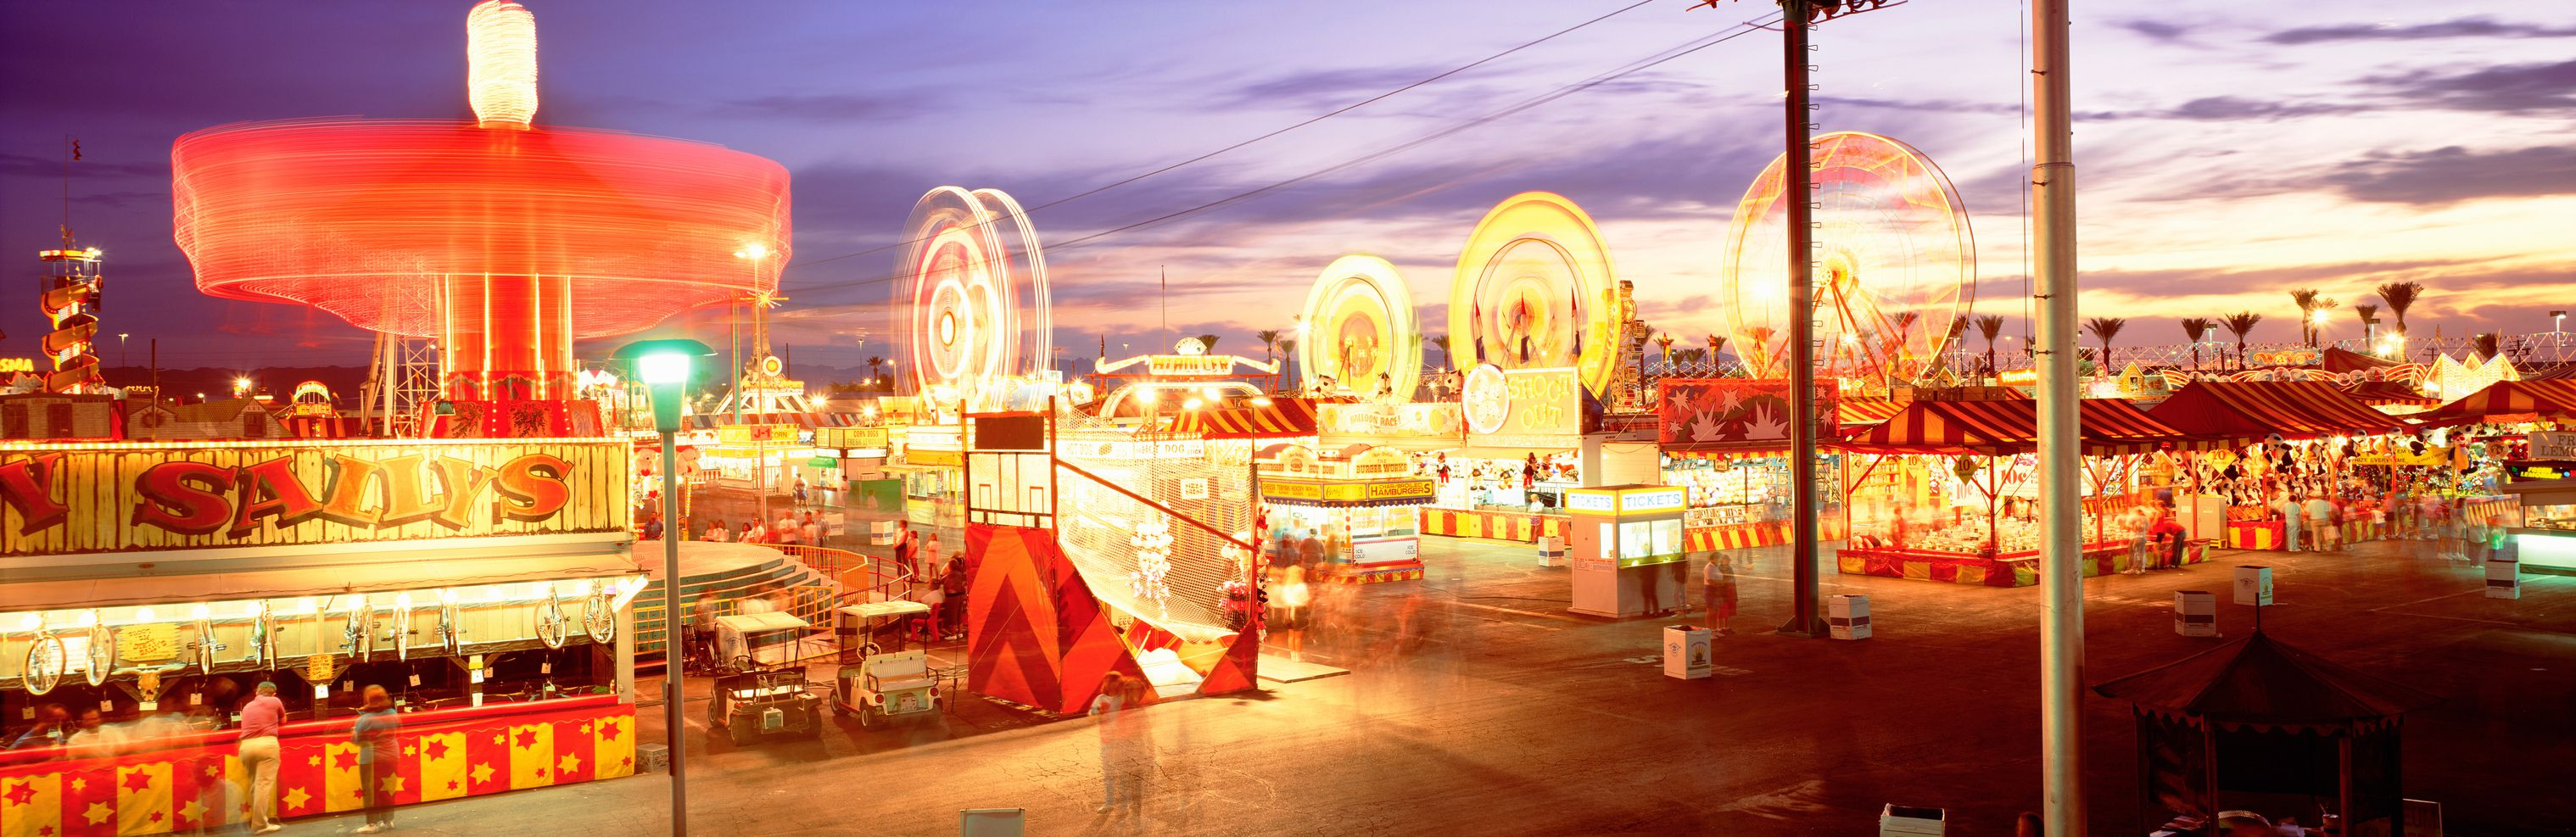 Car Insurance For Teens >> Visitors Guide to the Arizona State Fair in Phoenix